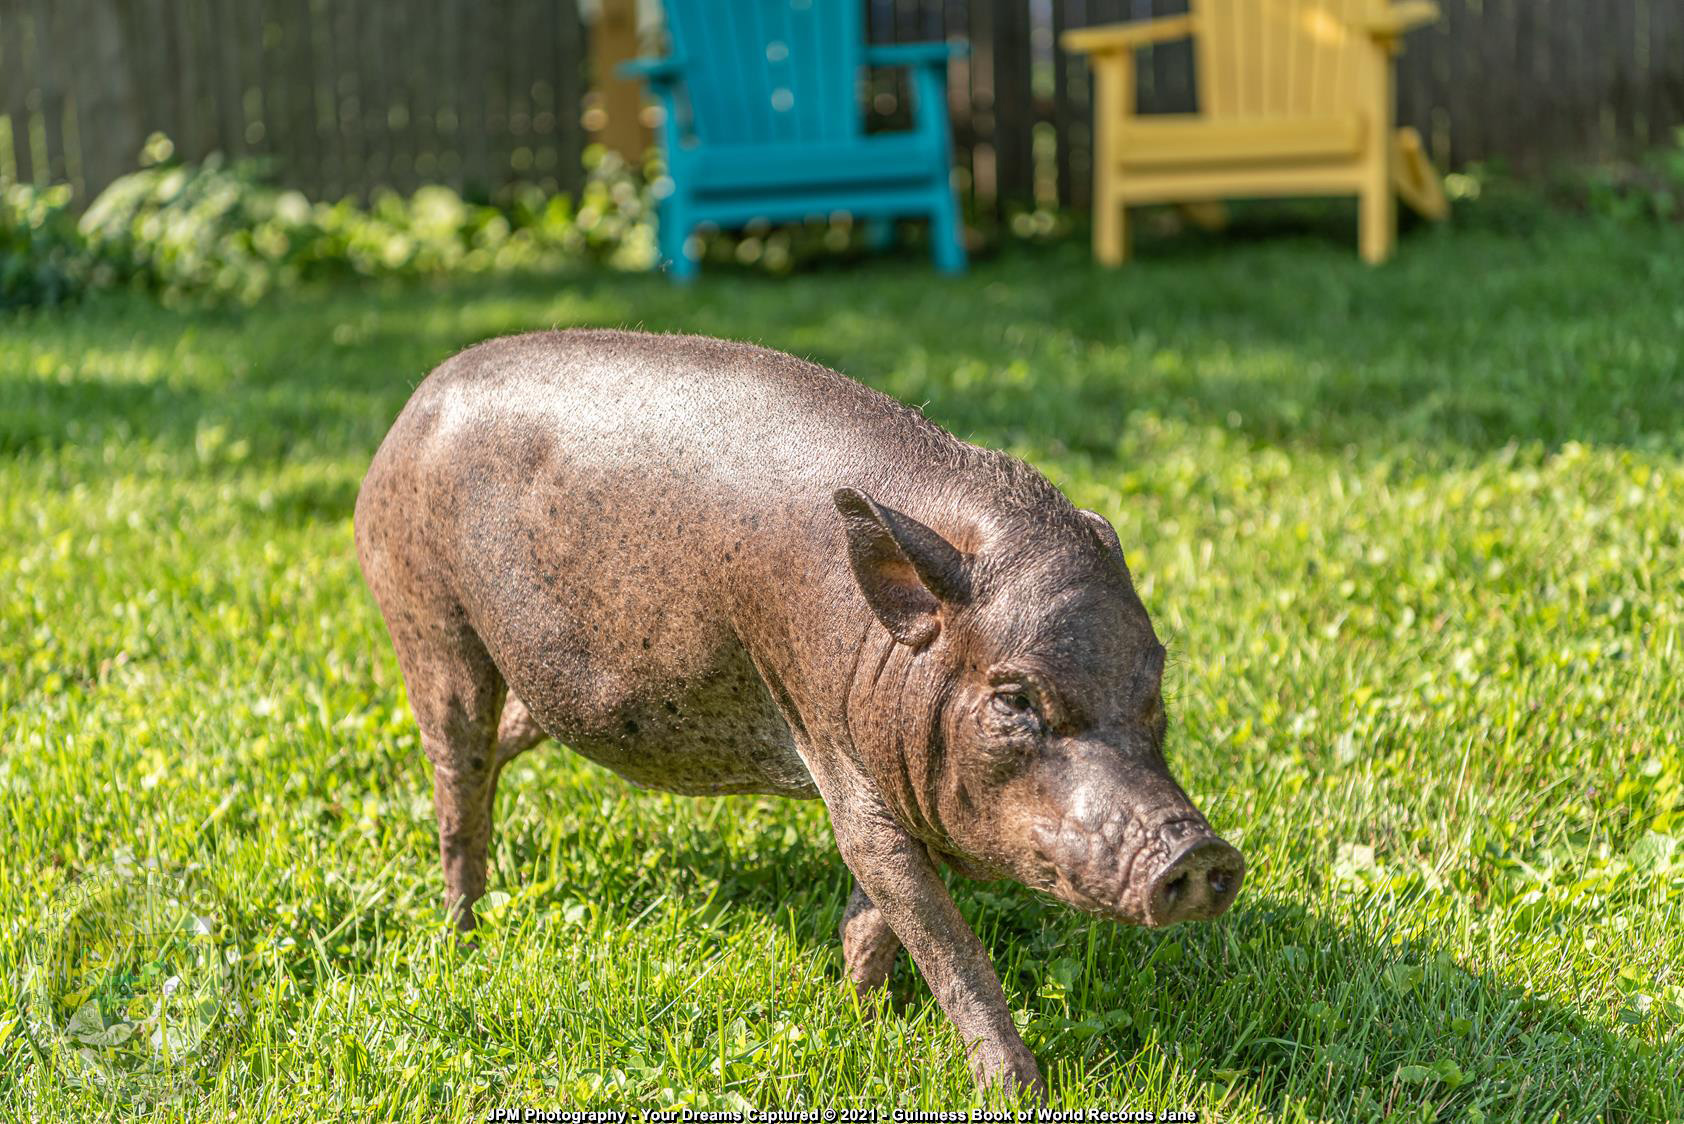 Baby Jane - The Oldest Pig to Ever Be Kept in Captivity Dies at 23